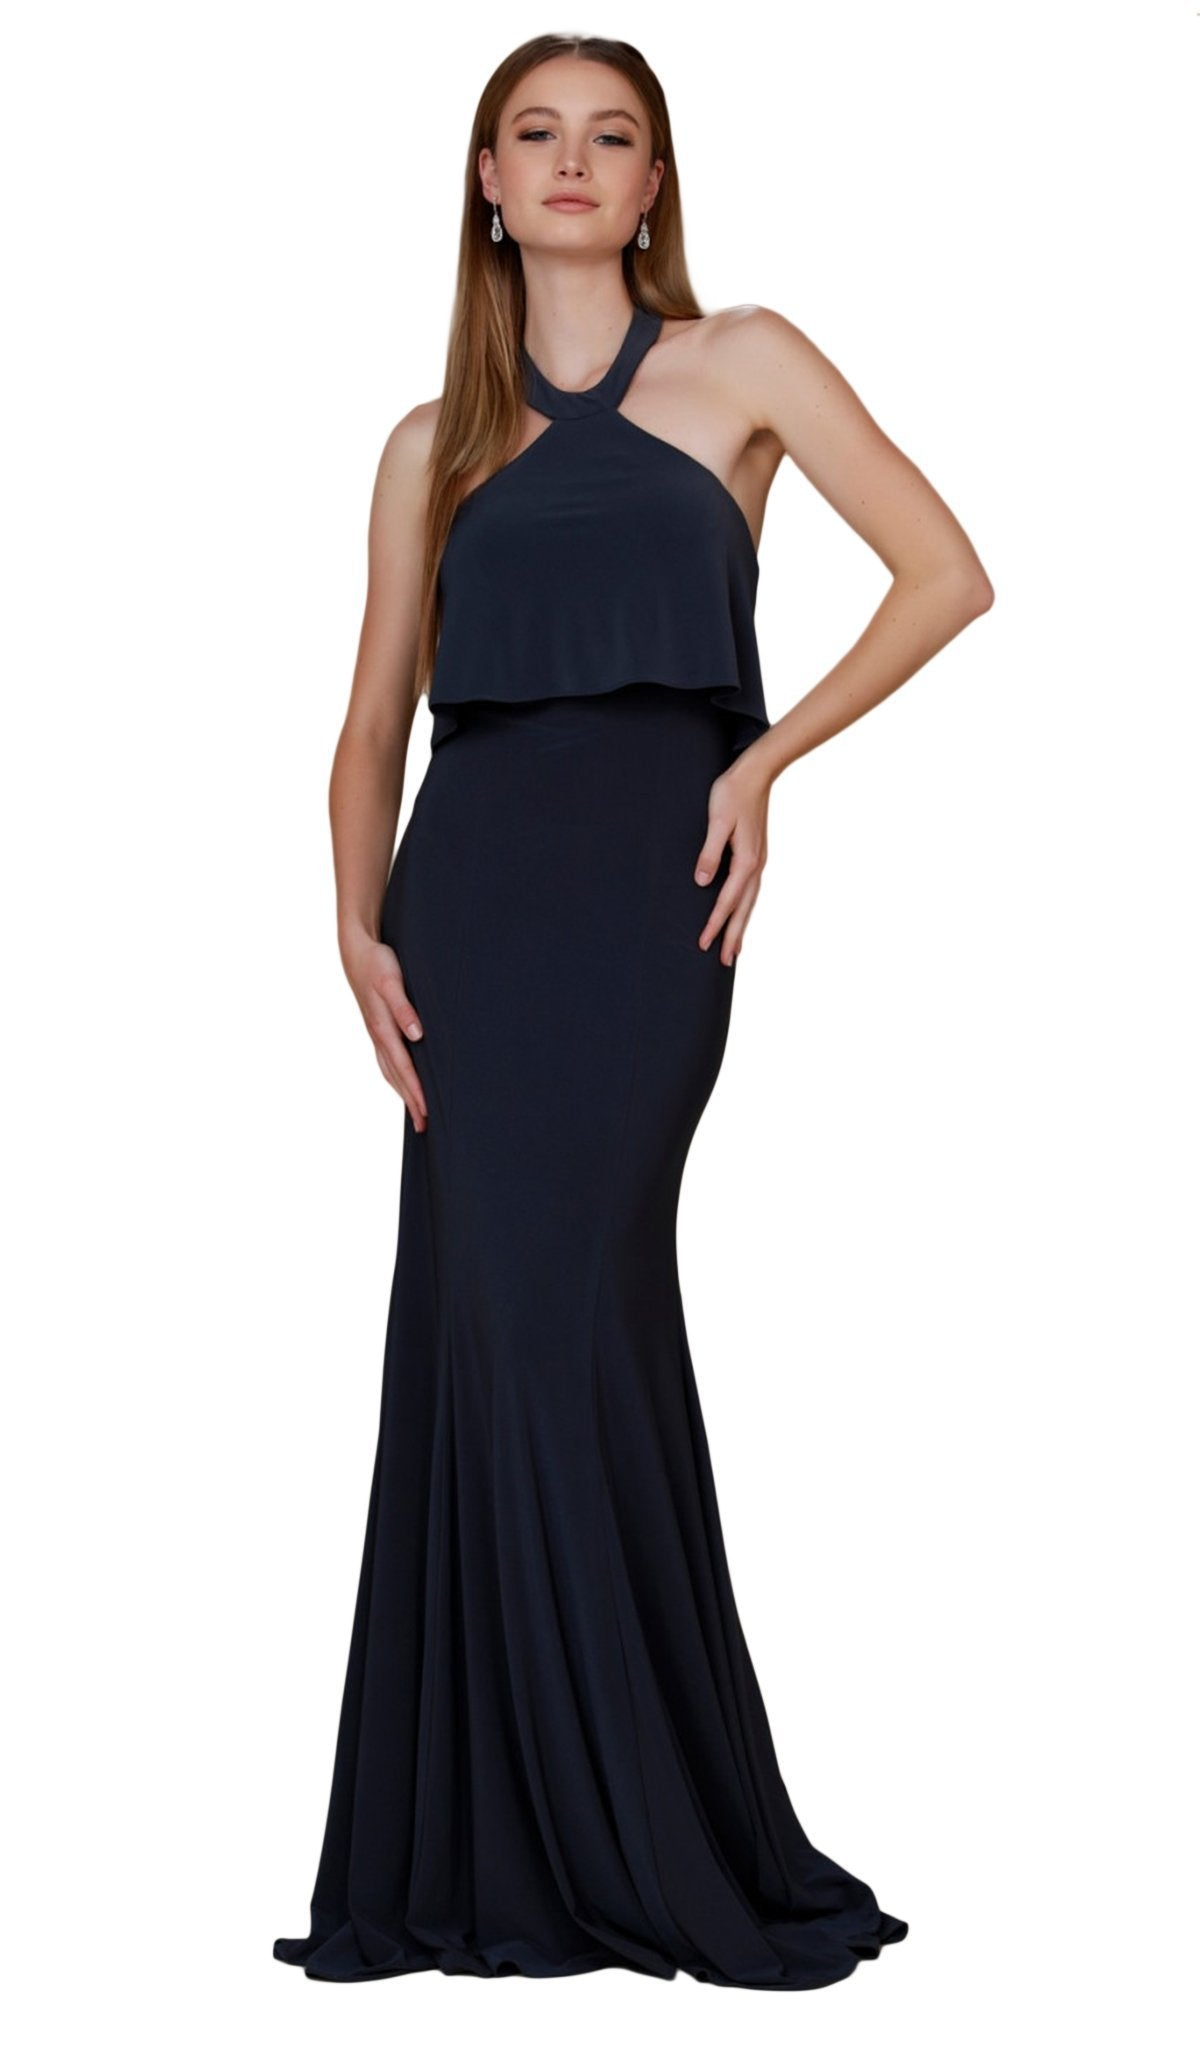 Nox Anabel - Q132 Halter Neck Trumpet Dress With Sweep Train In Blue